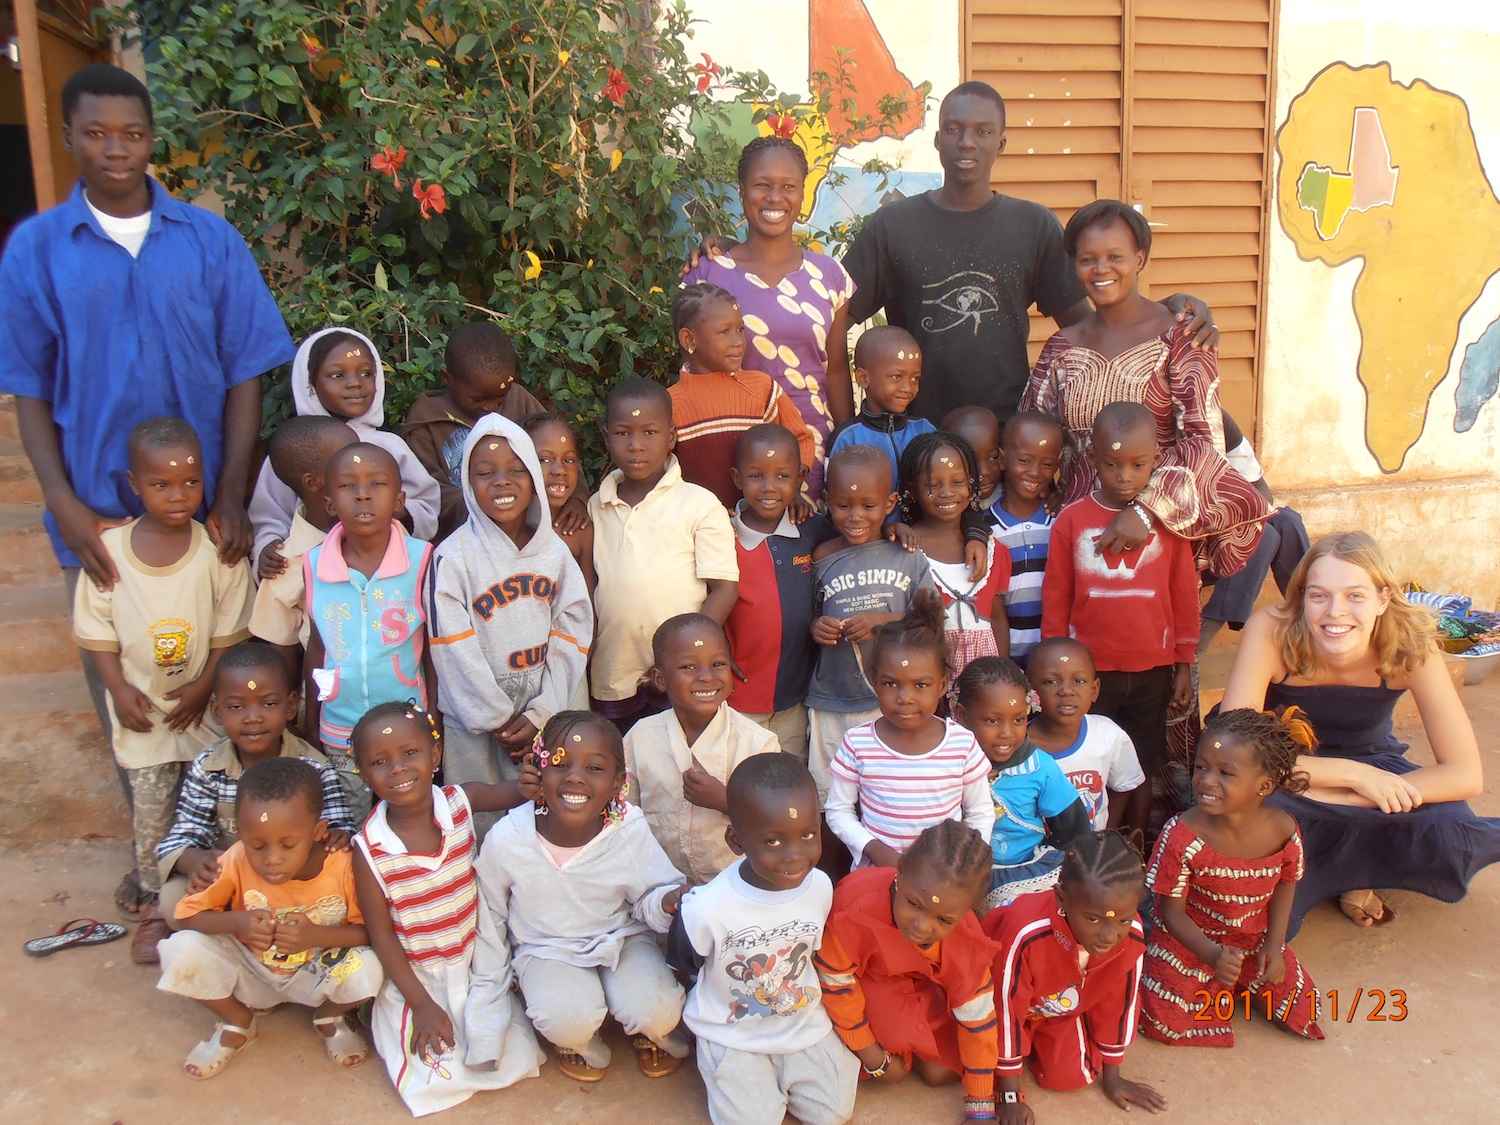 The children of the Ciwara school with their teachers